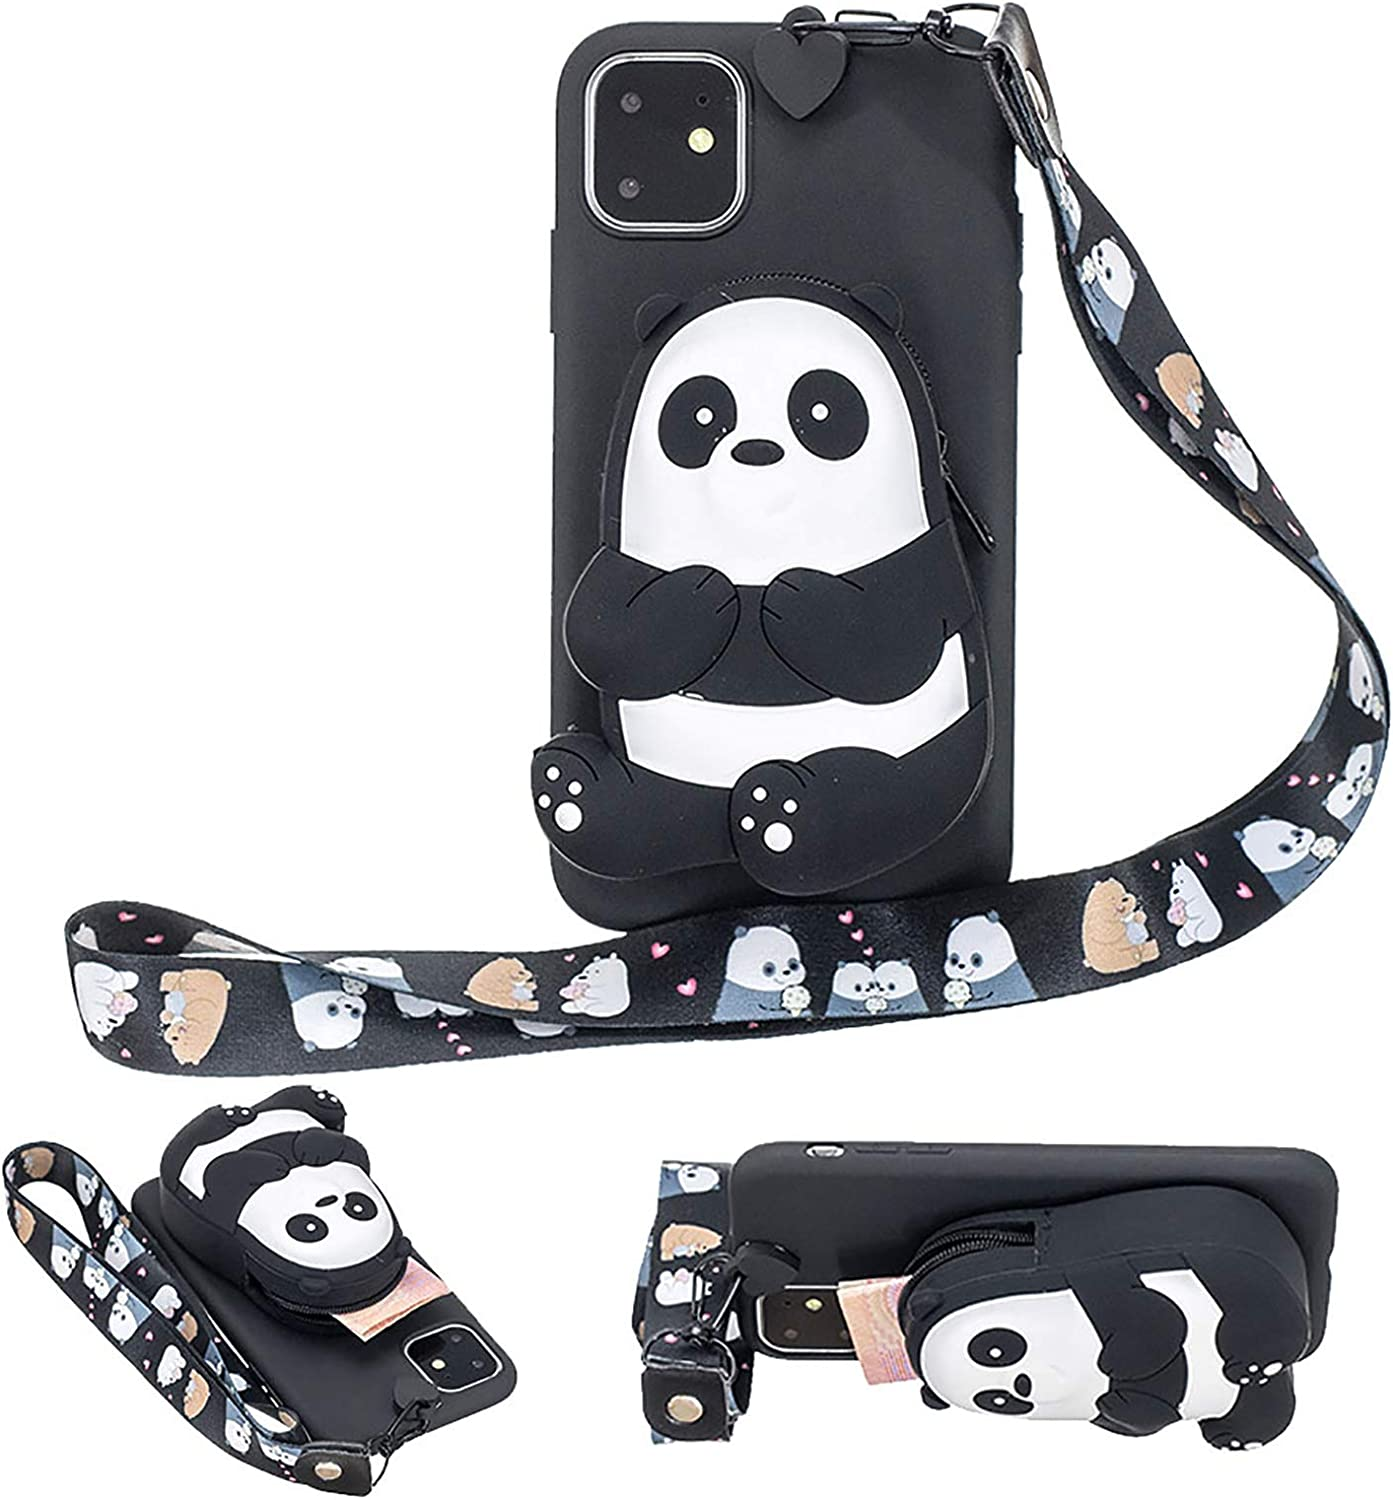 Girlyard for Samsung Galaxy A12 5G Silicone Case with 3D Cartoon Animal Zipper Wallet Purse Stand Holder Back Cover and Long Detachable Lanyard Strap Phone Case for Kids Girls, Black Bear